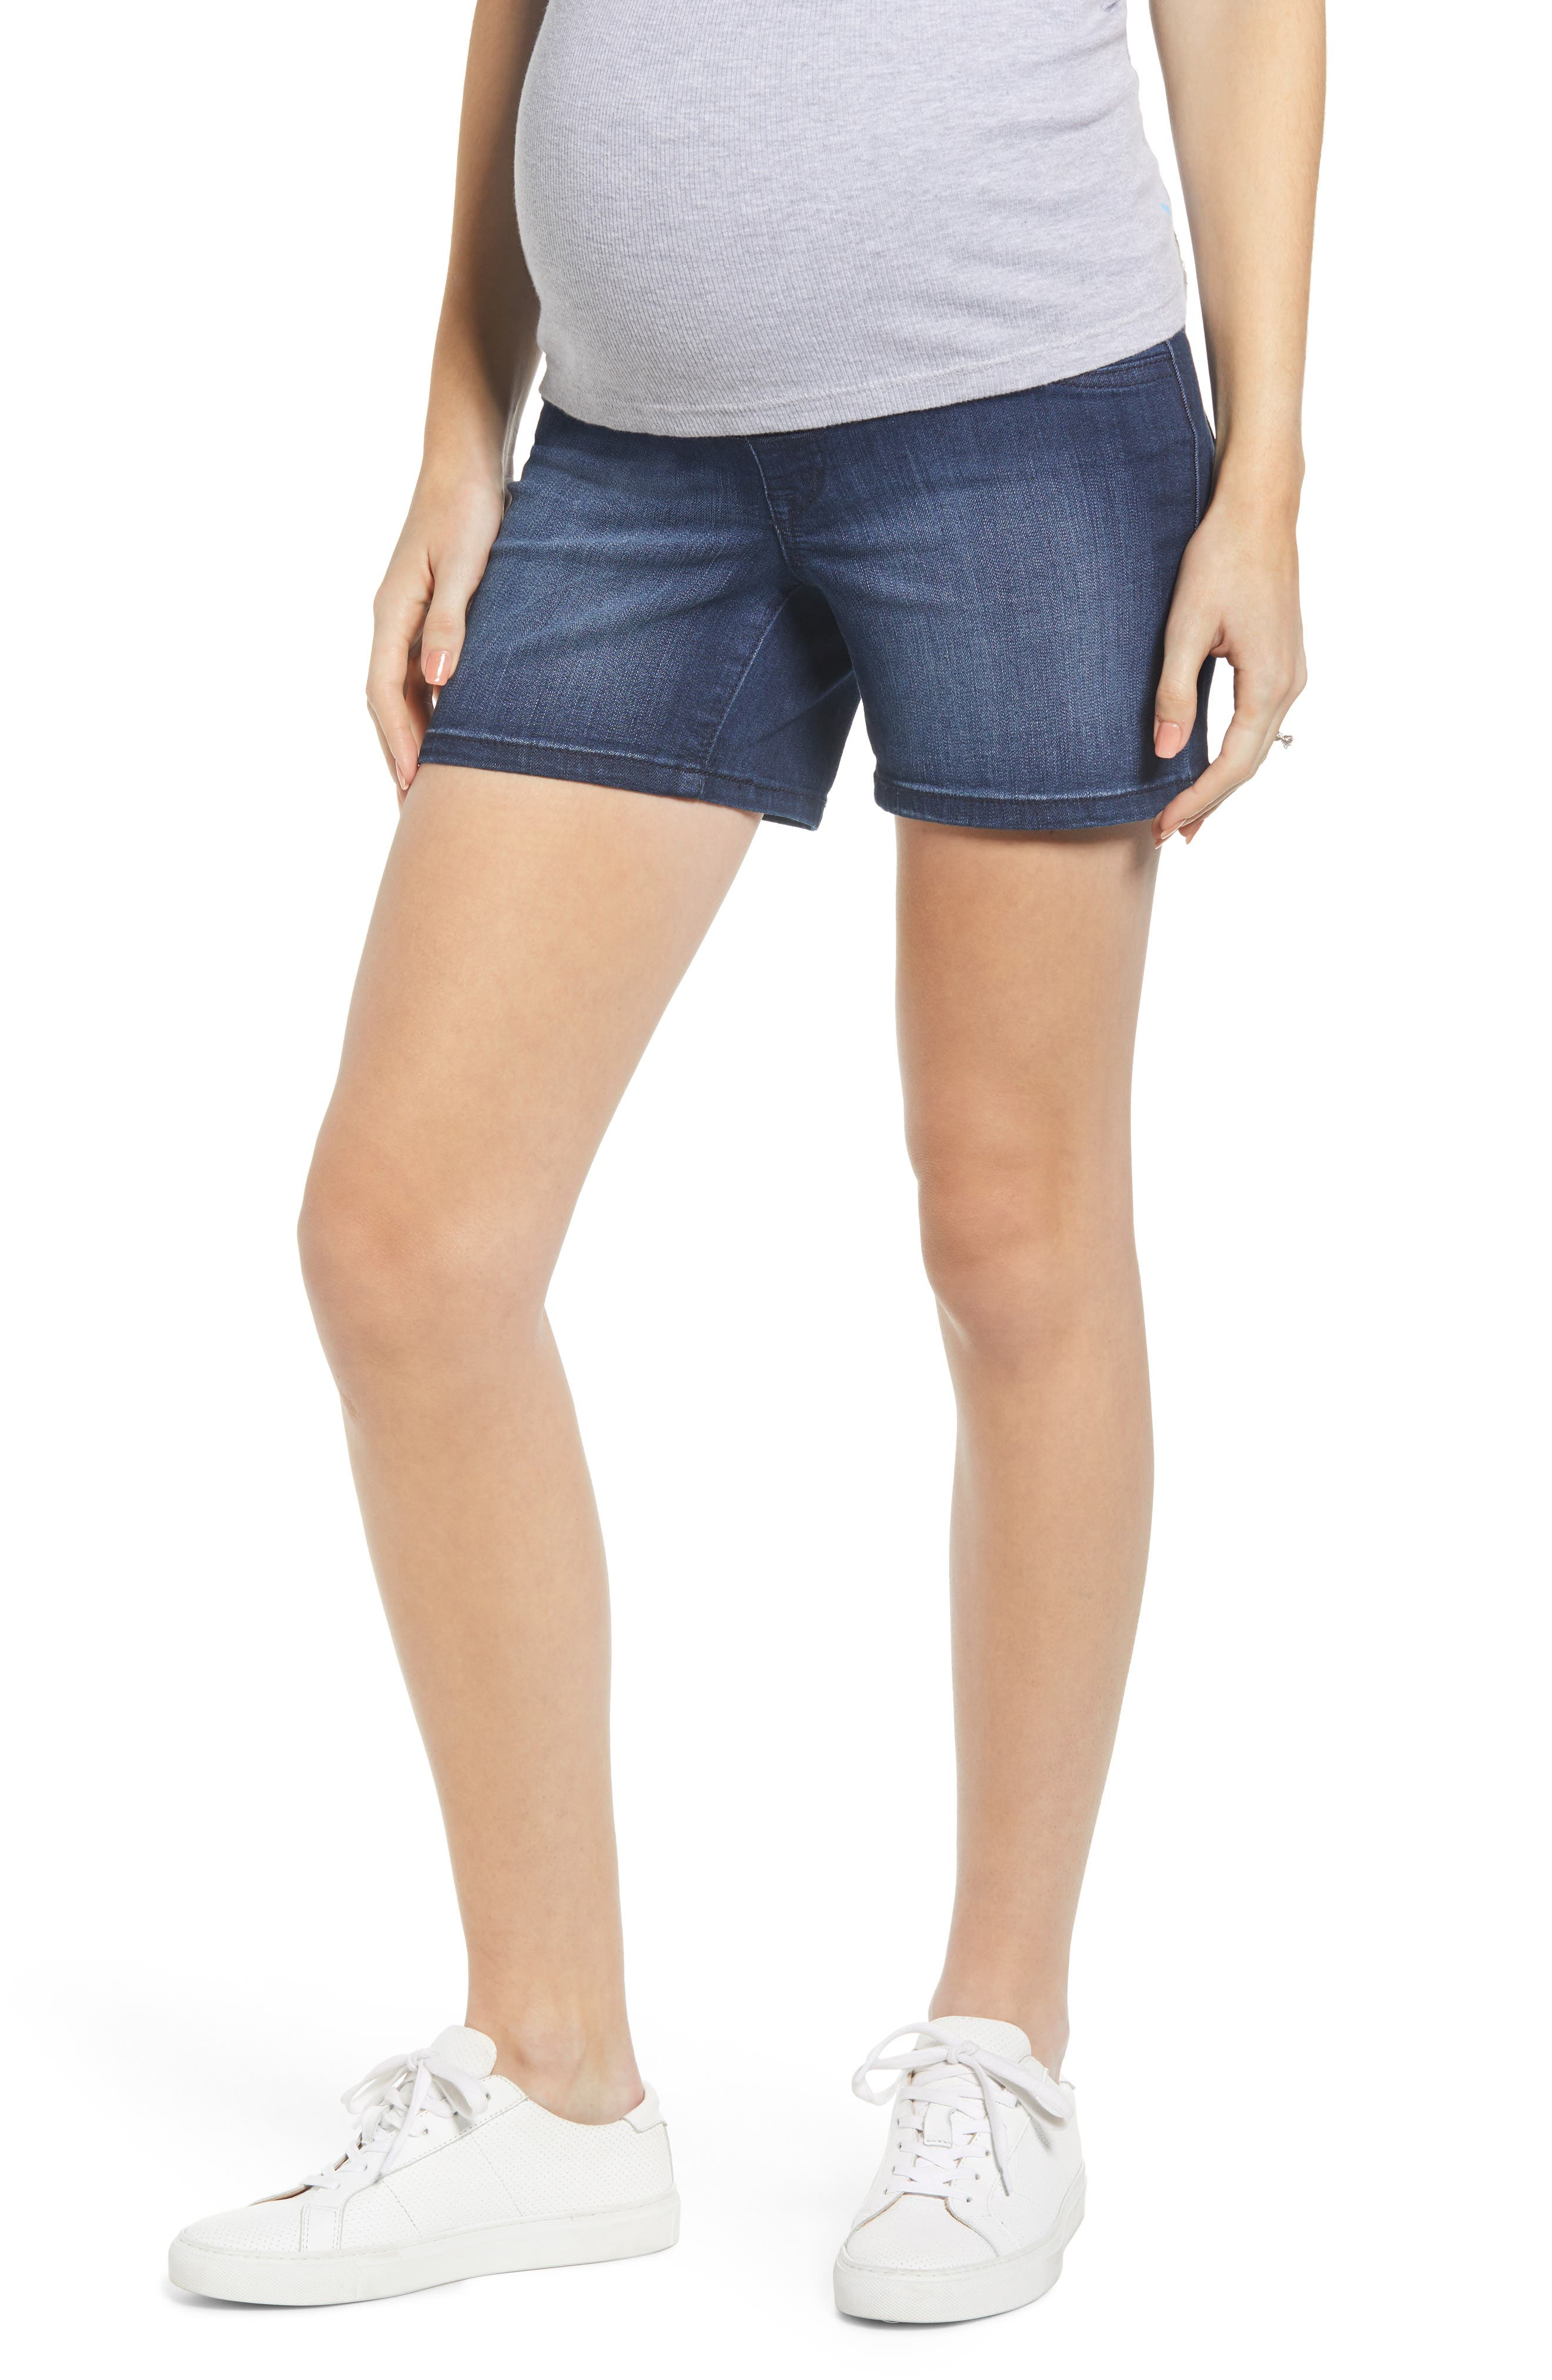 Women's 1822 Denim Maternity Shorts